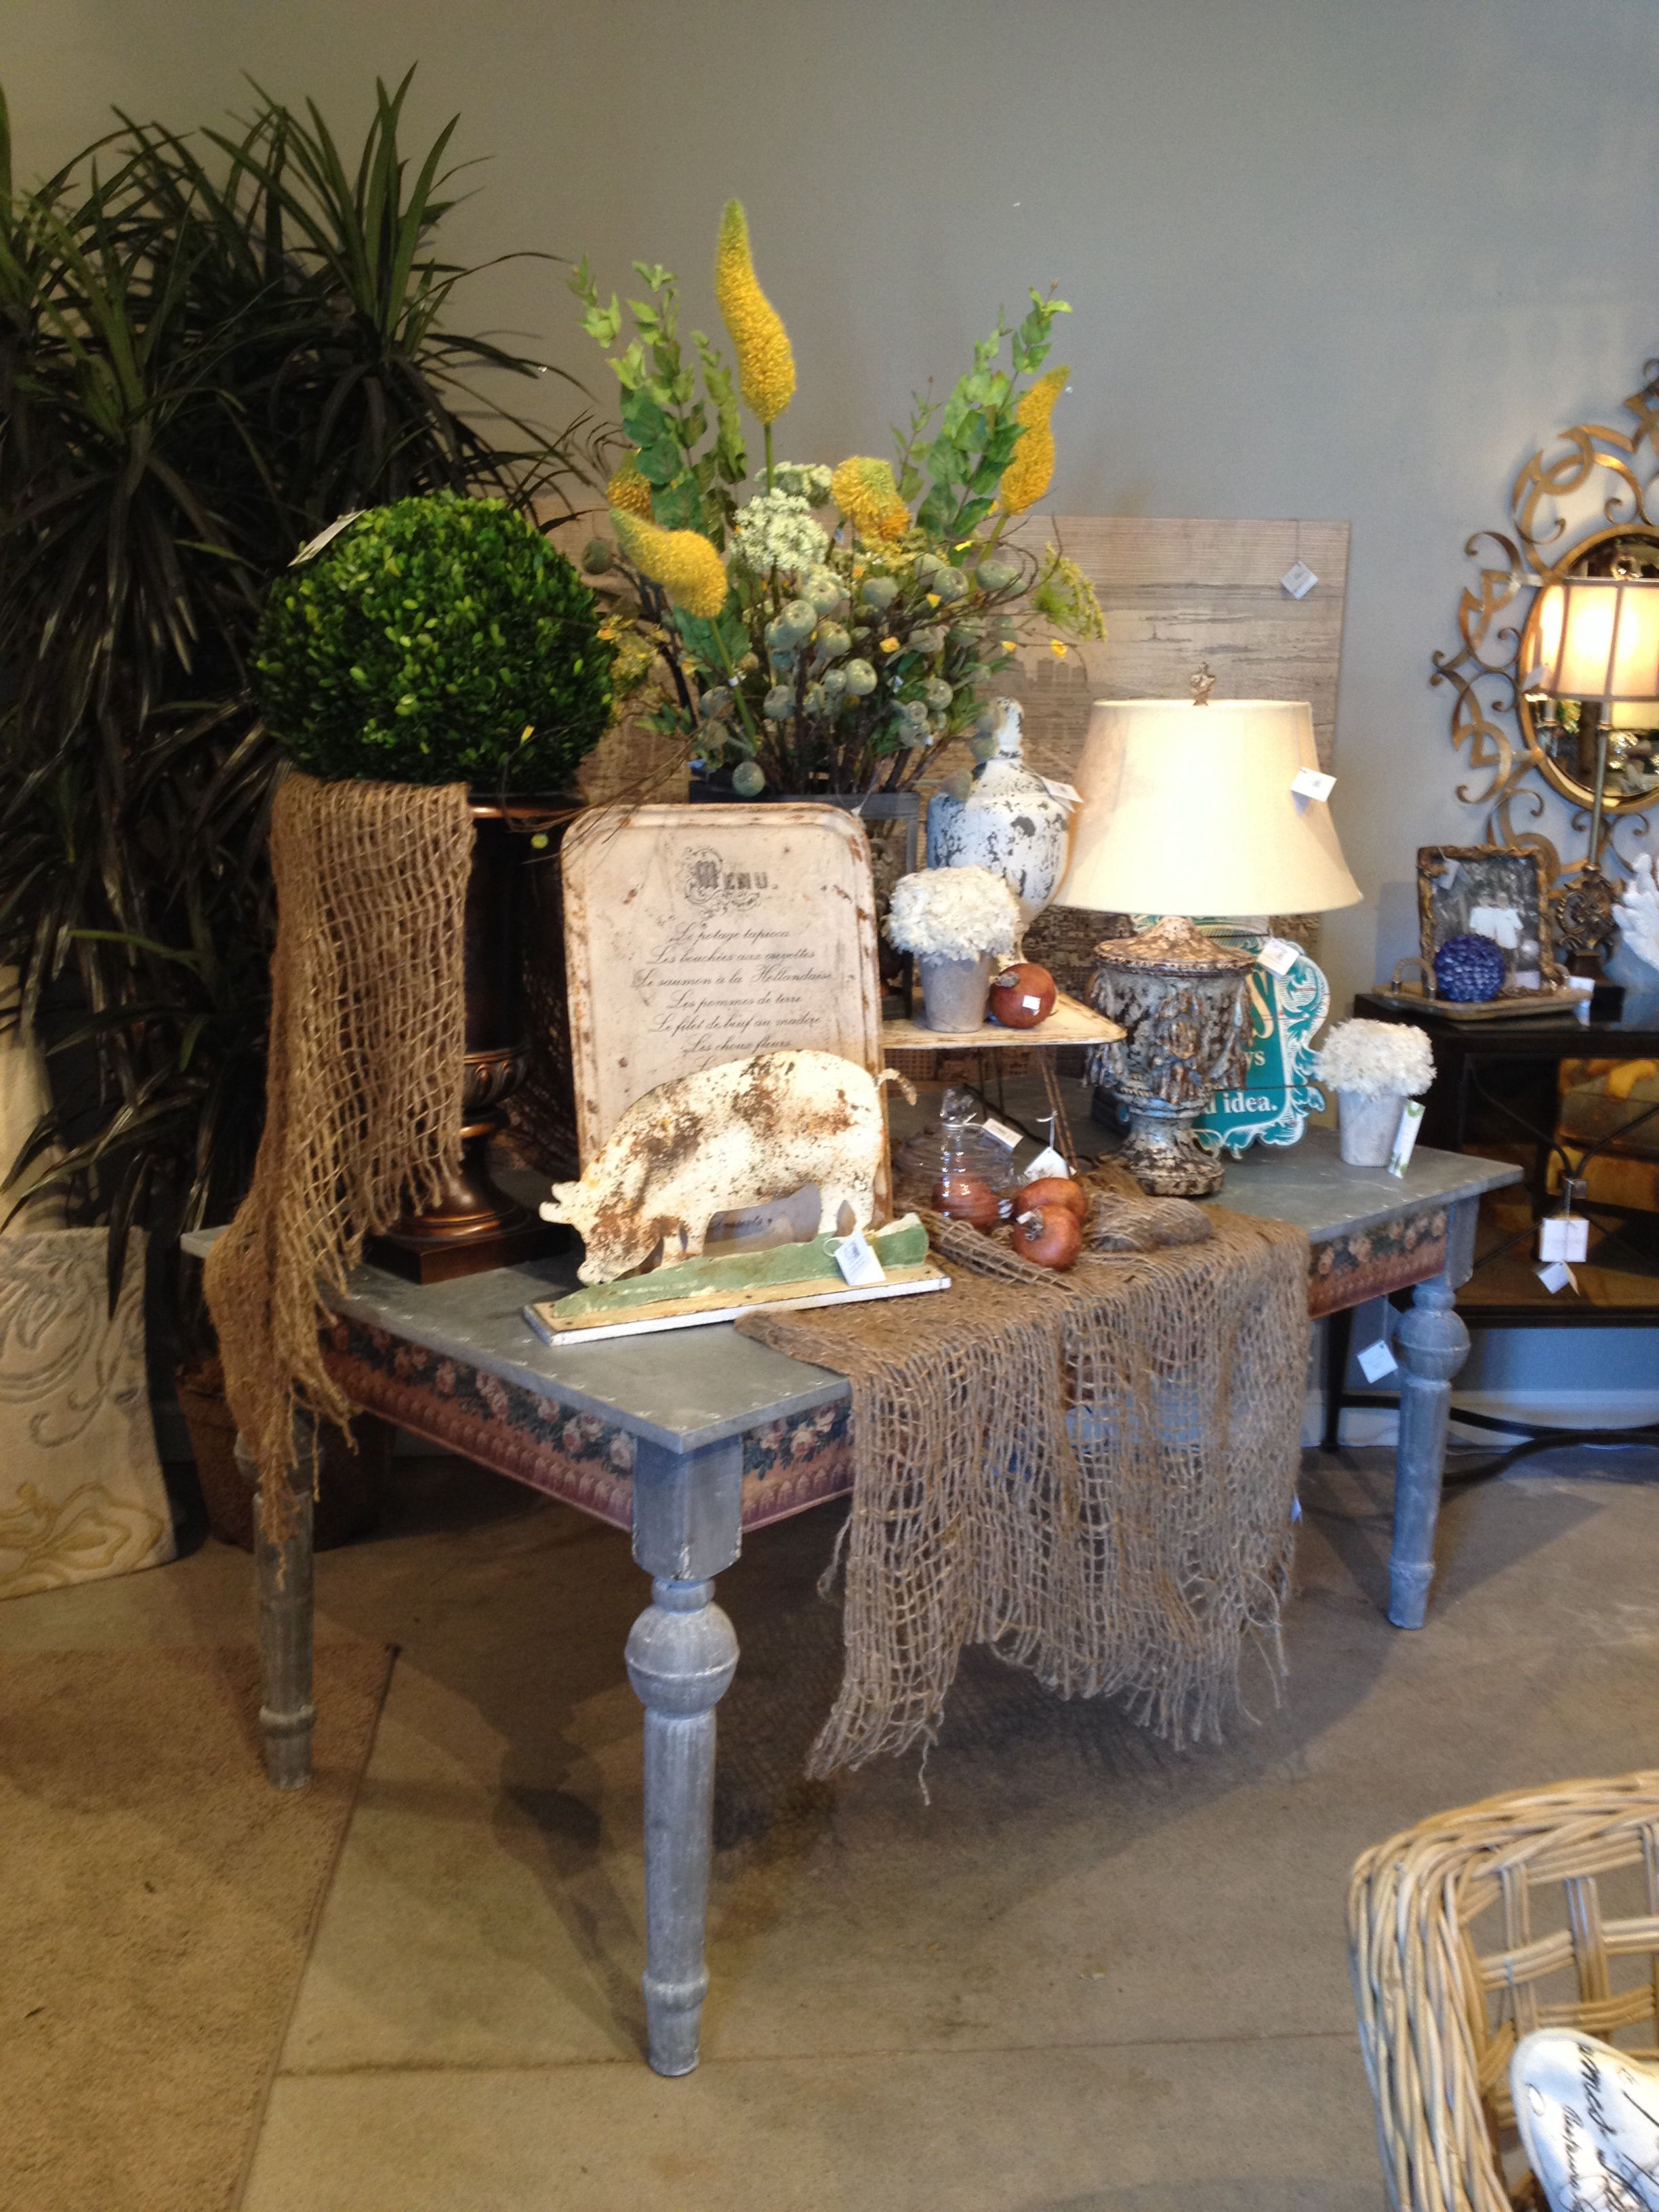 Starting to put together our spring vintage farm look!- Lionheart Collection